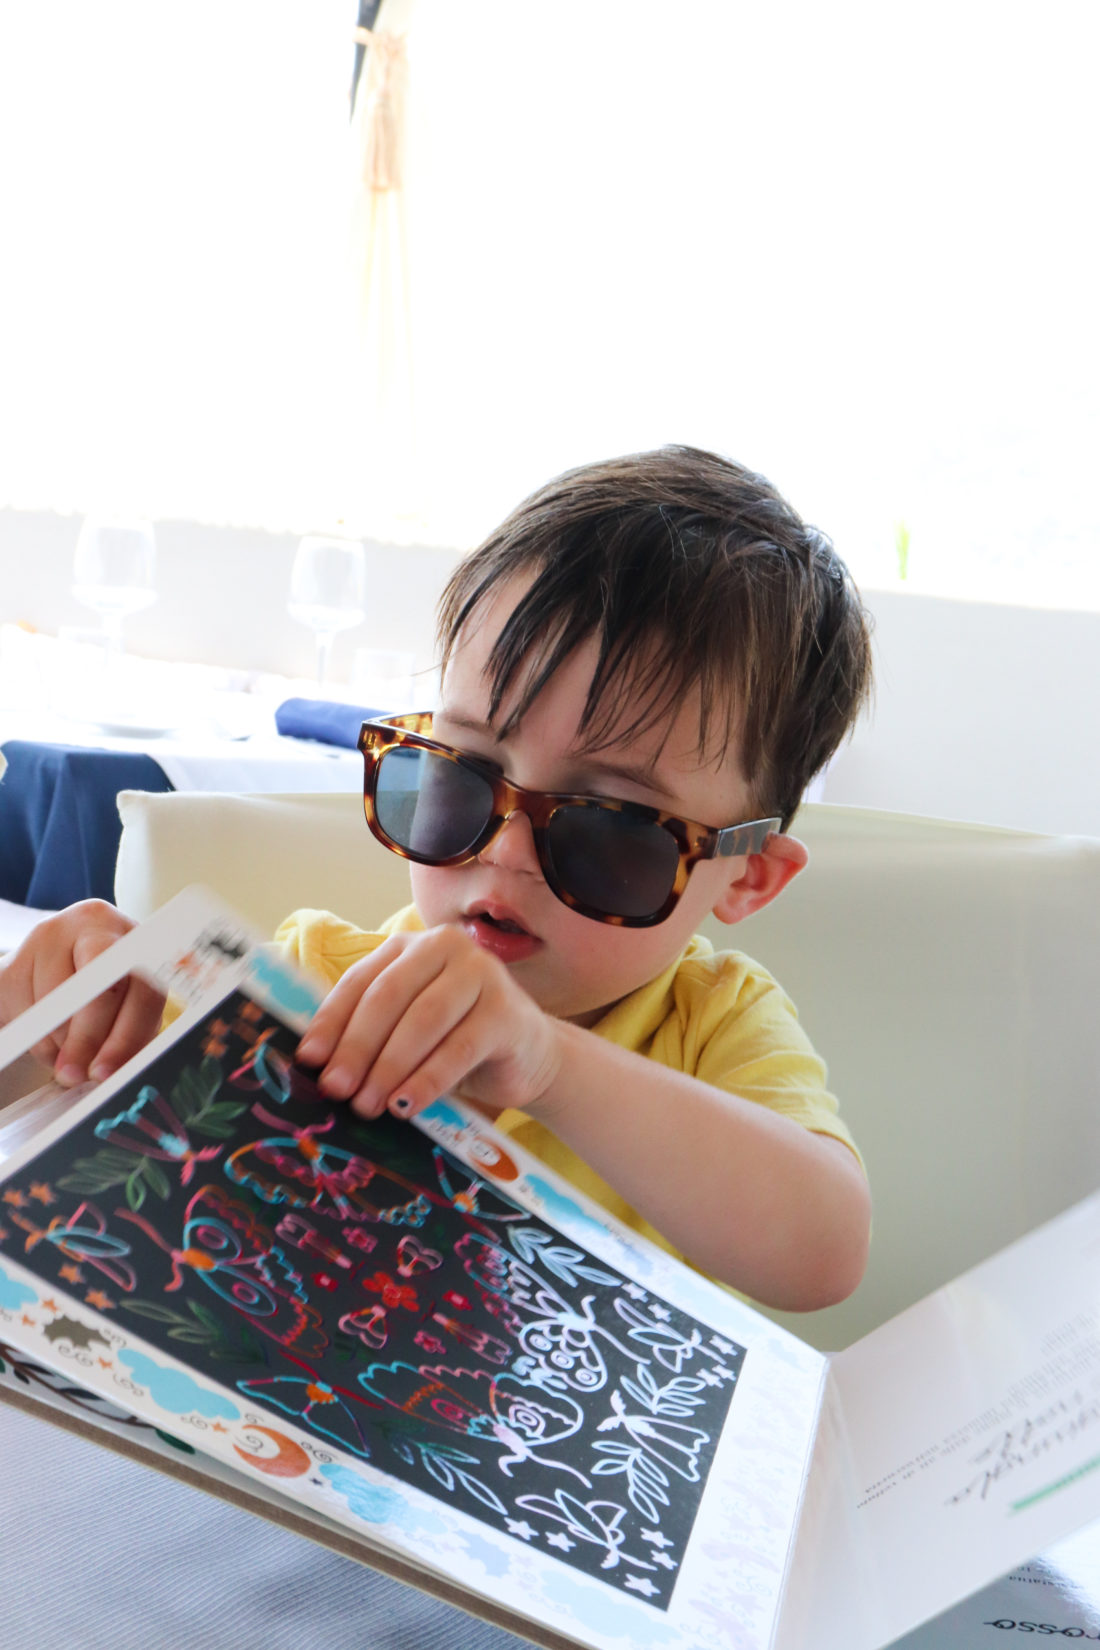 Eva Amurri Martino's son Major wears sunglasses in Amalfi